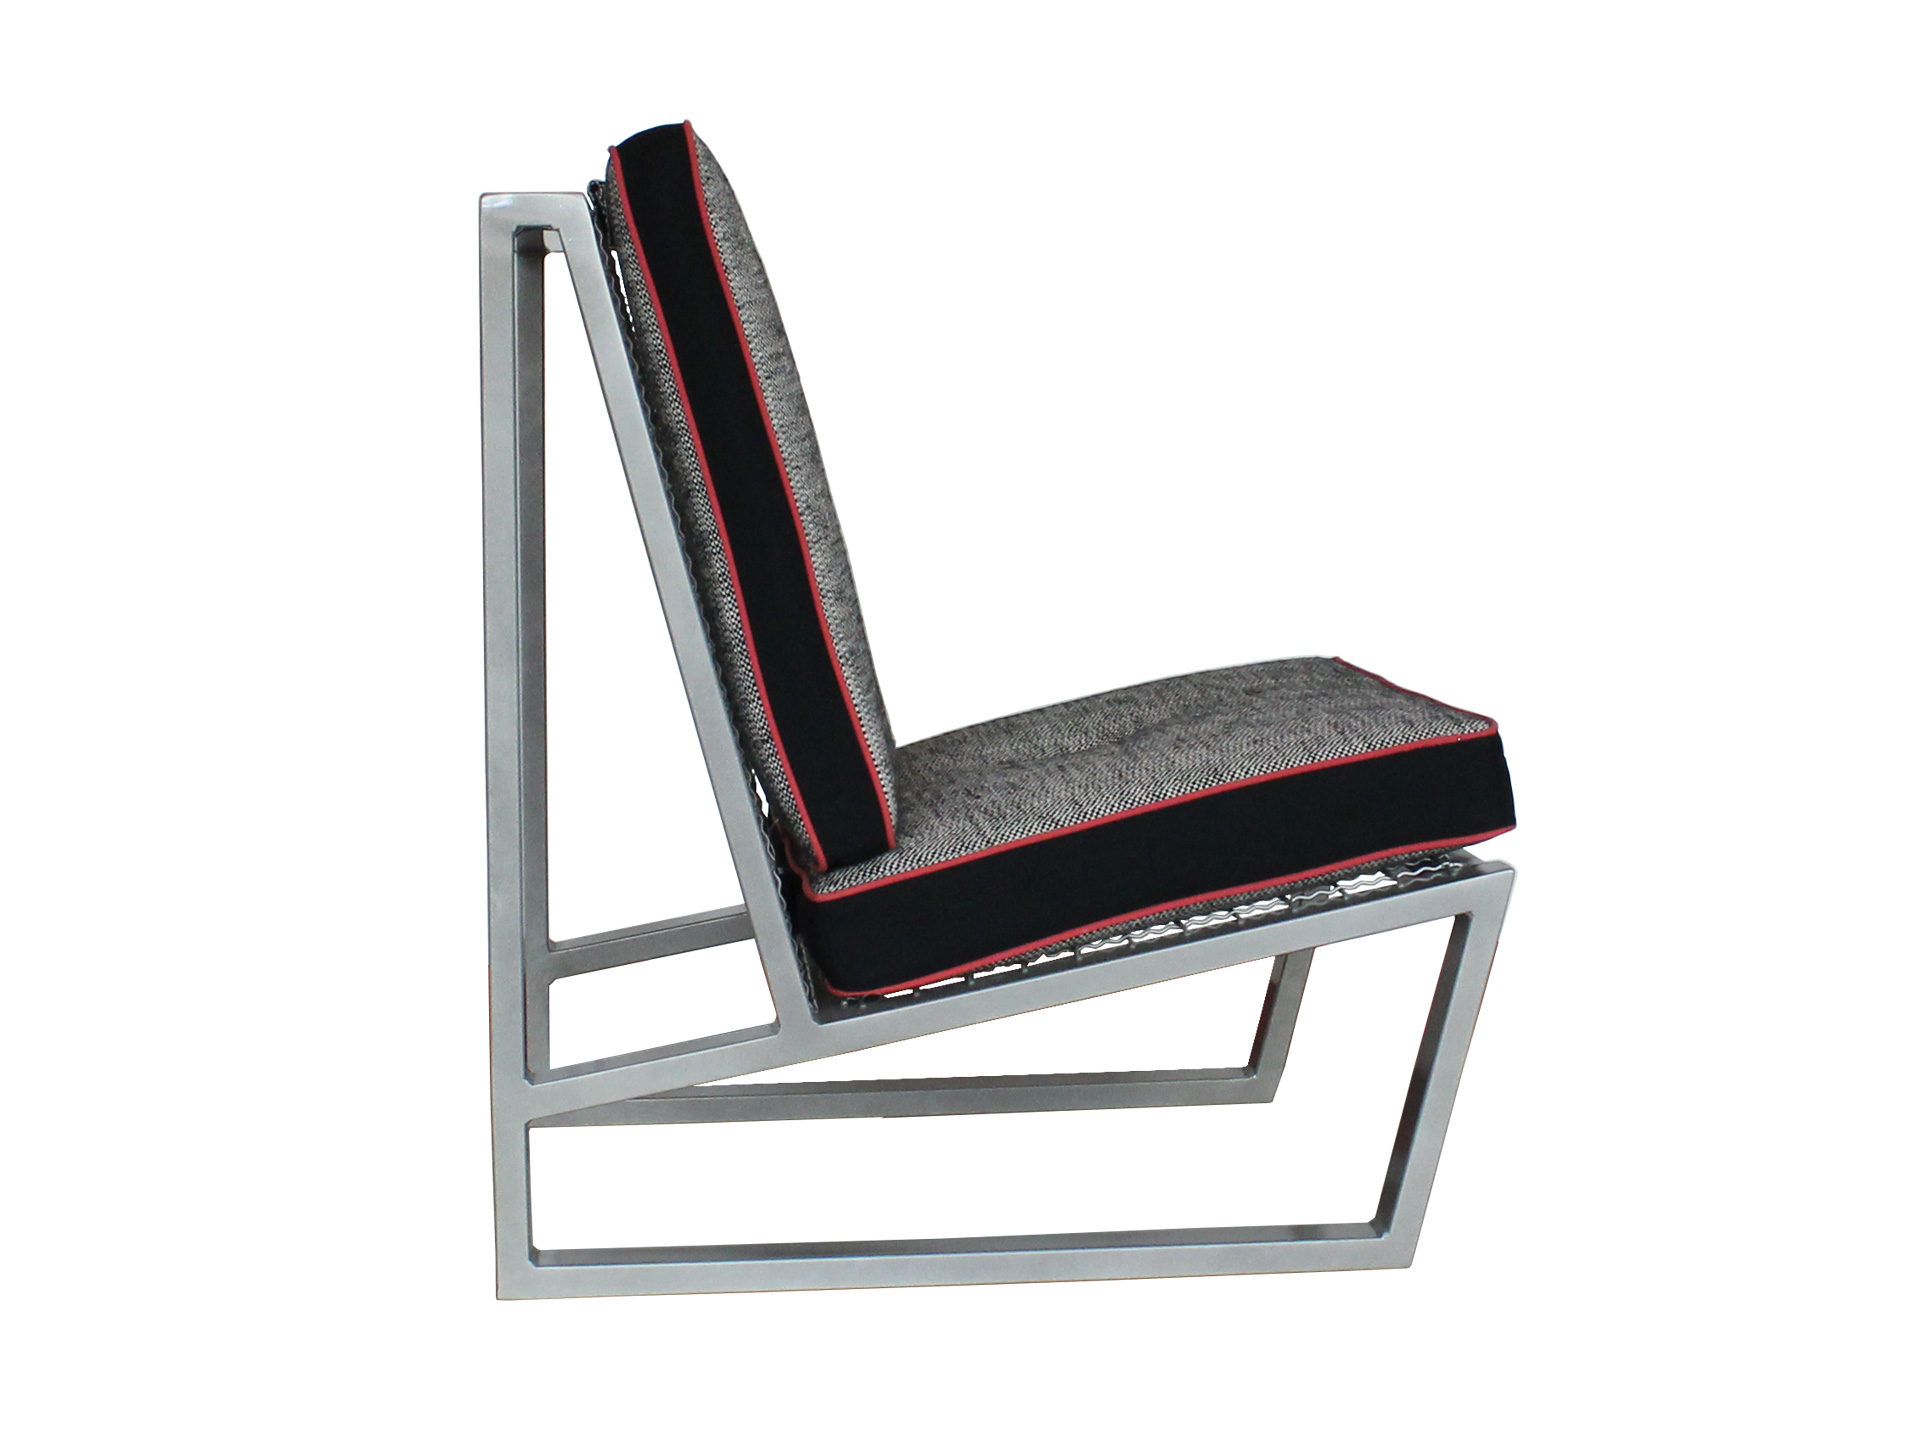 Del Calle chair in black, white, and grey from the side